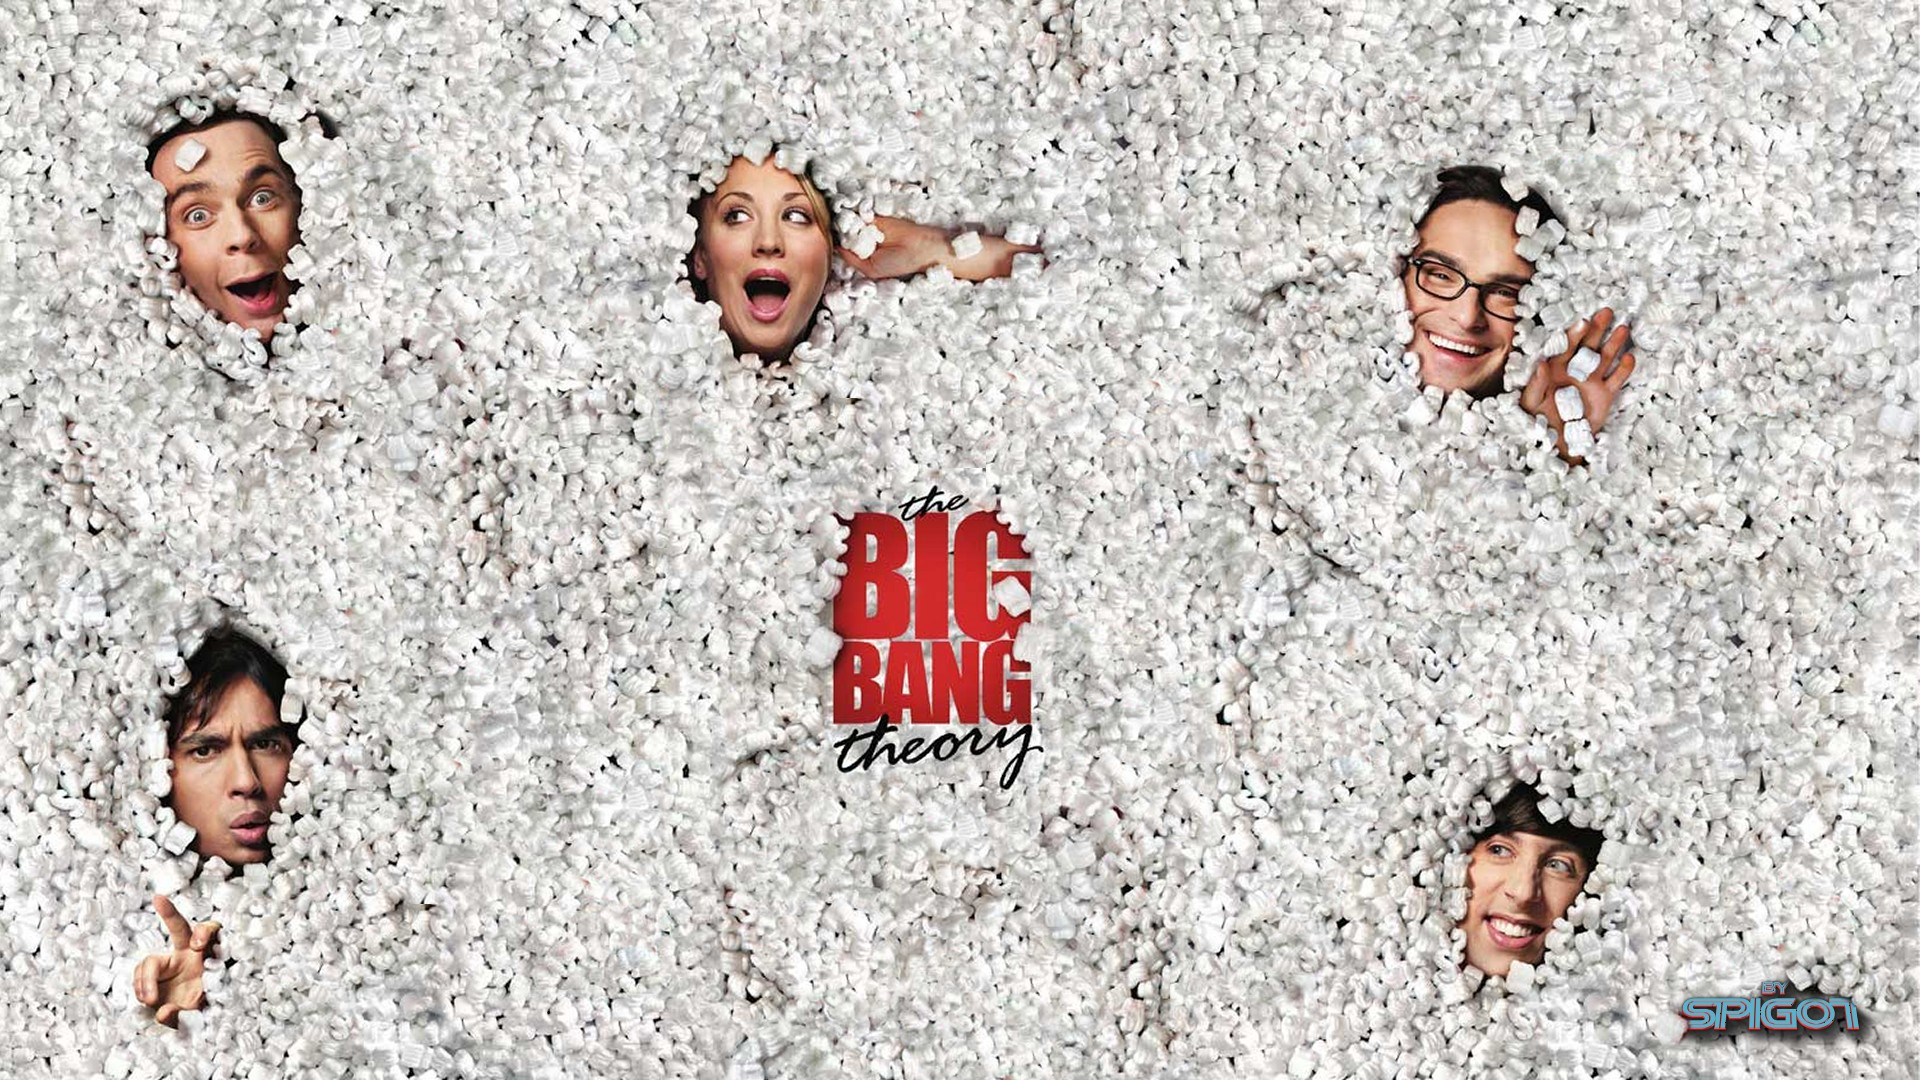 The Big Bang Theory Wallpaper George Spigot S Blog